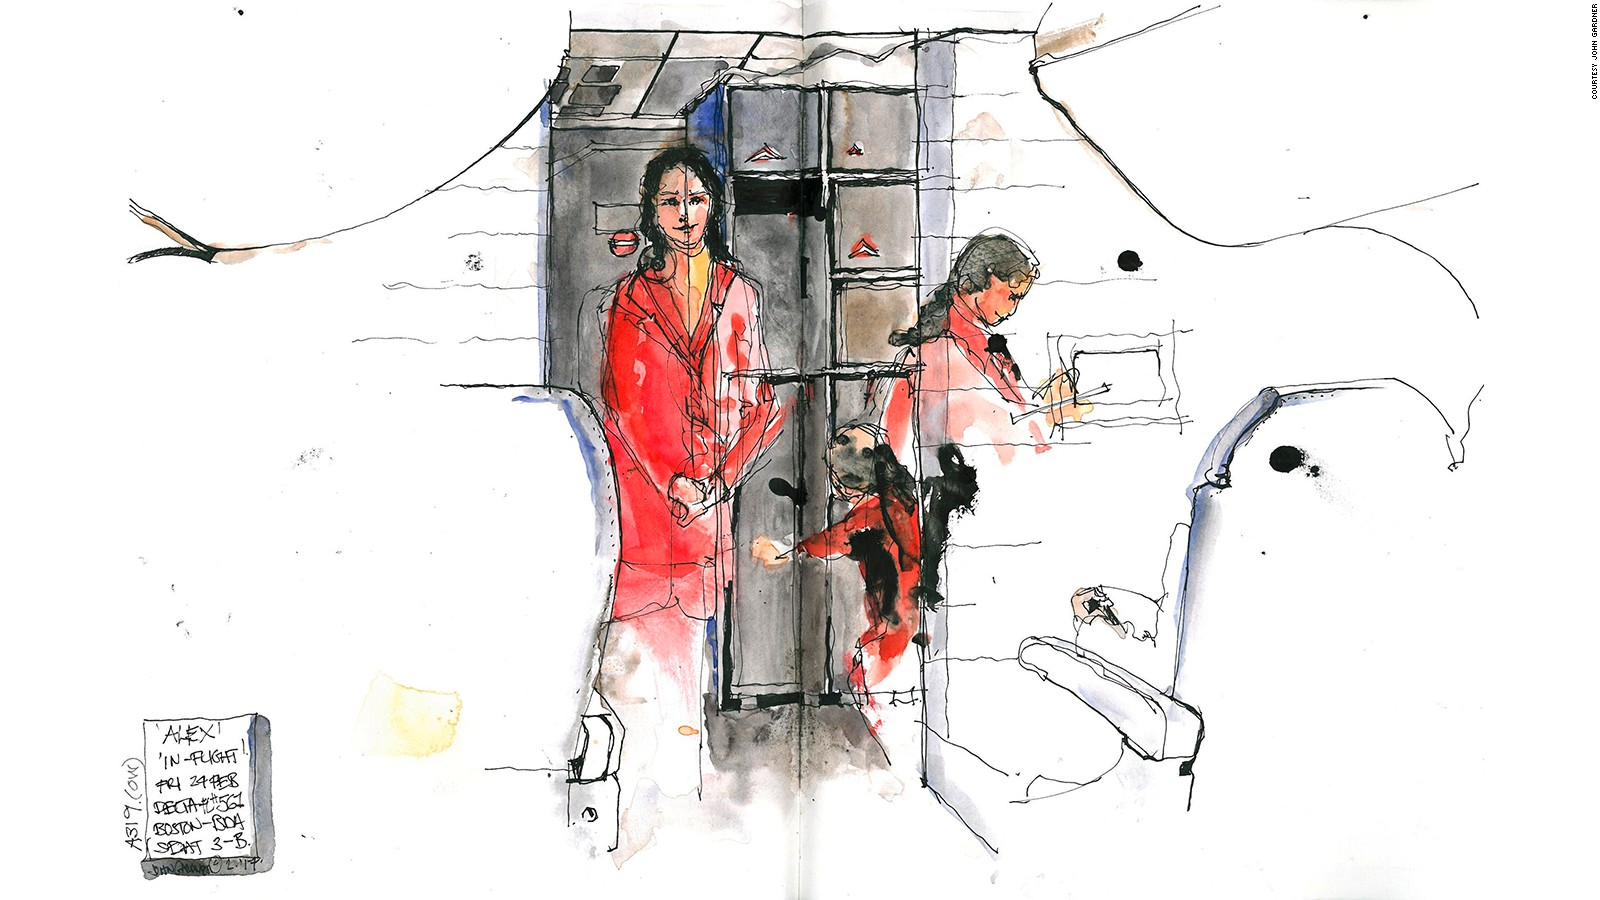 Painting On Planes Stunning Sketches Of Airplane Cabins Cnn Travel